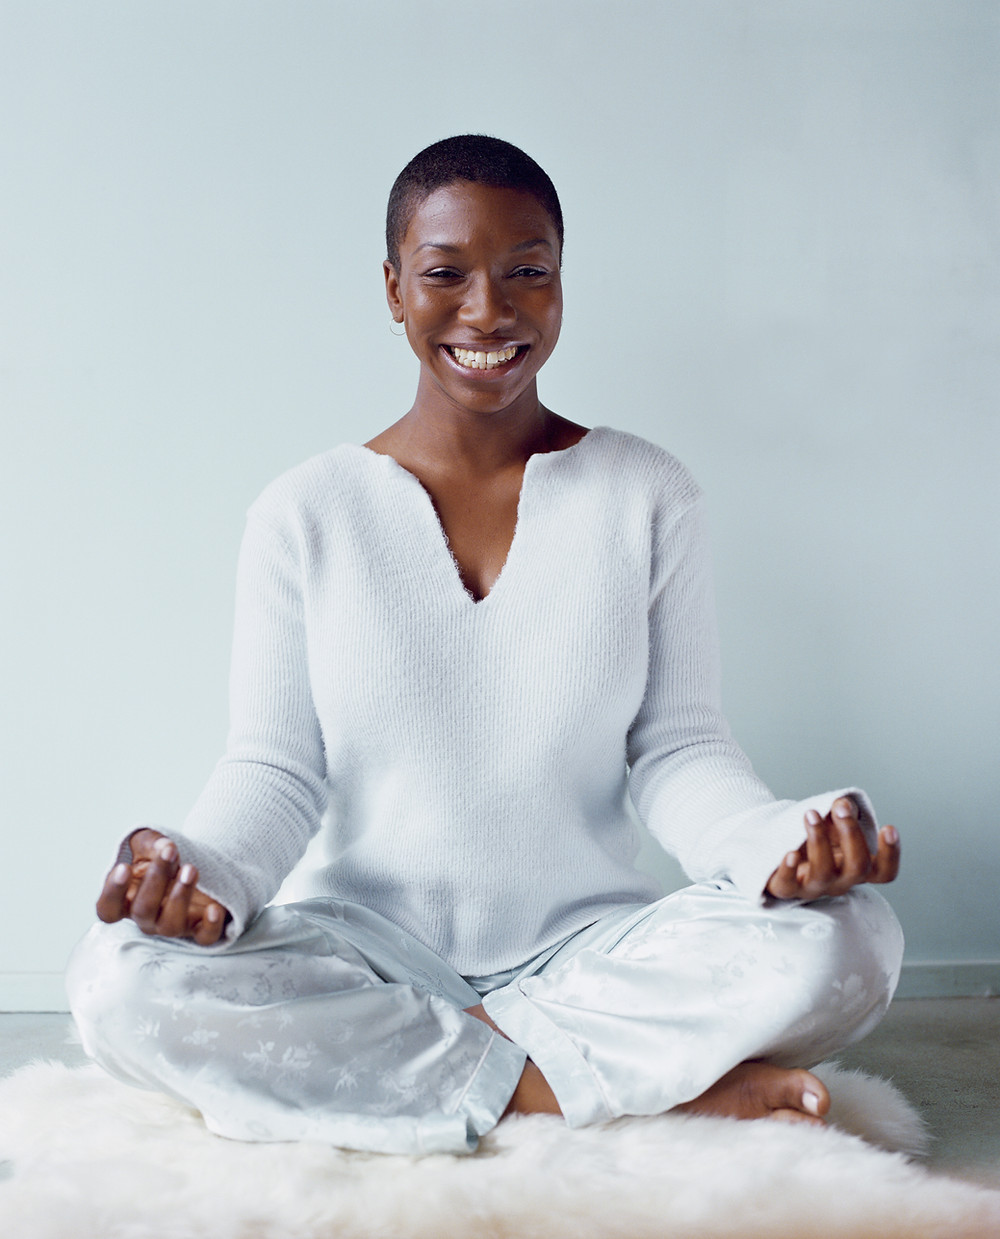 Woman smiling in mediation position.